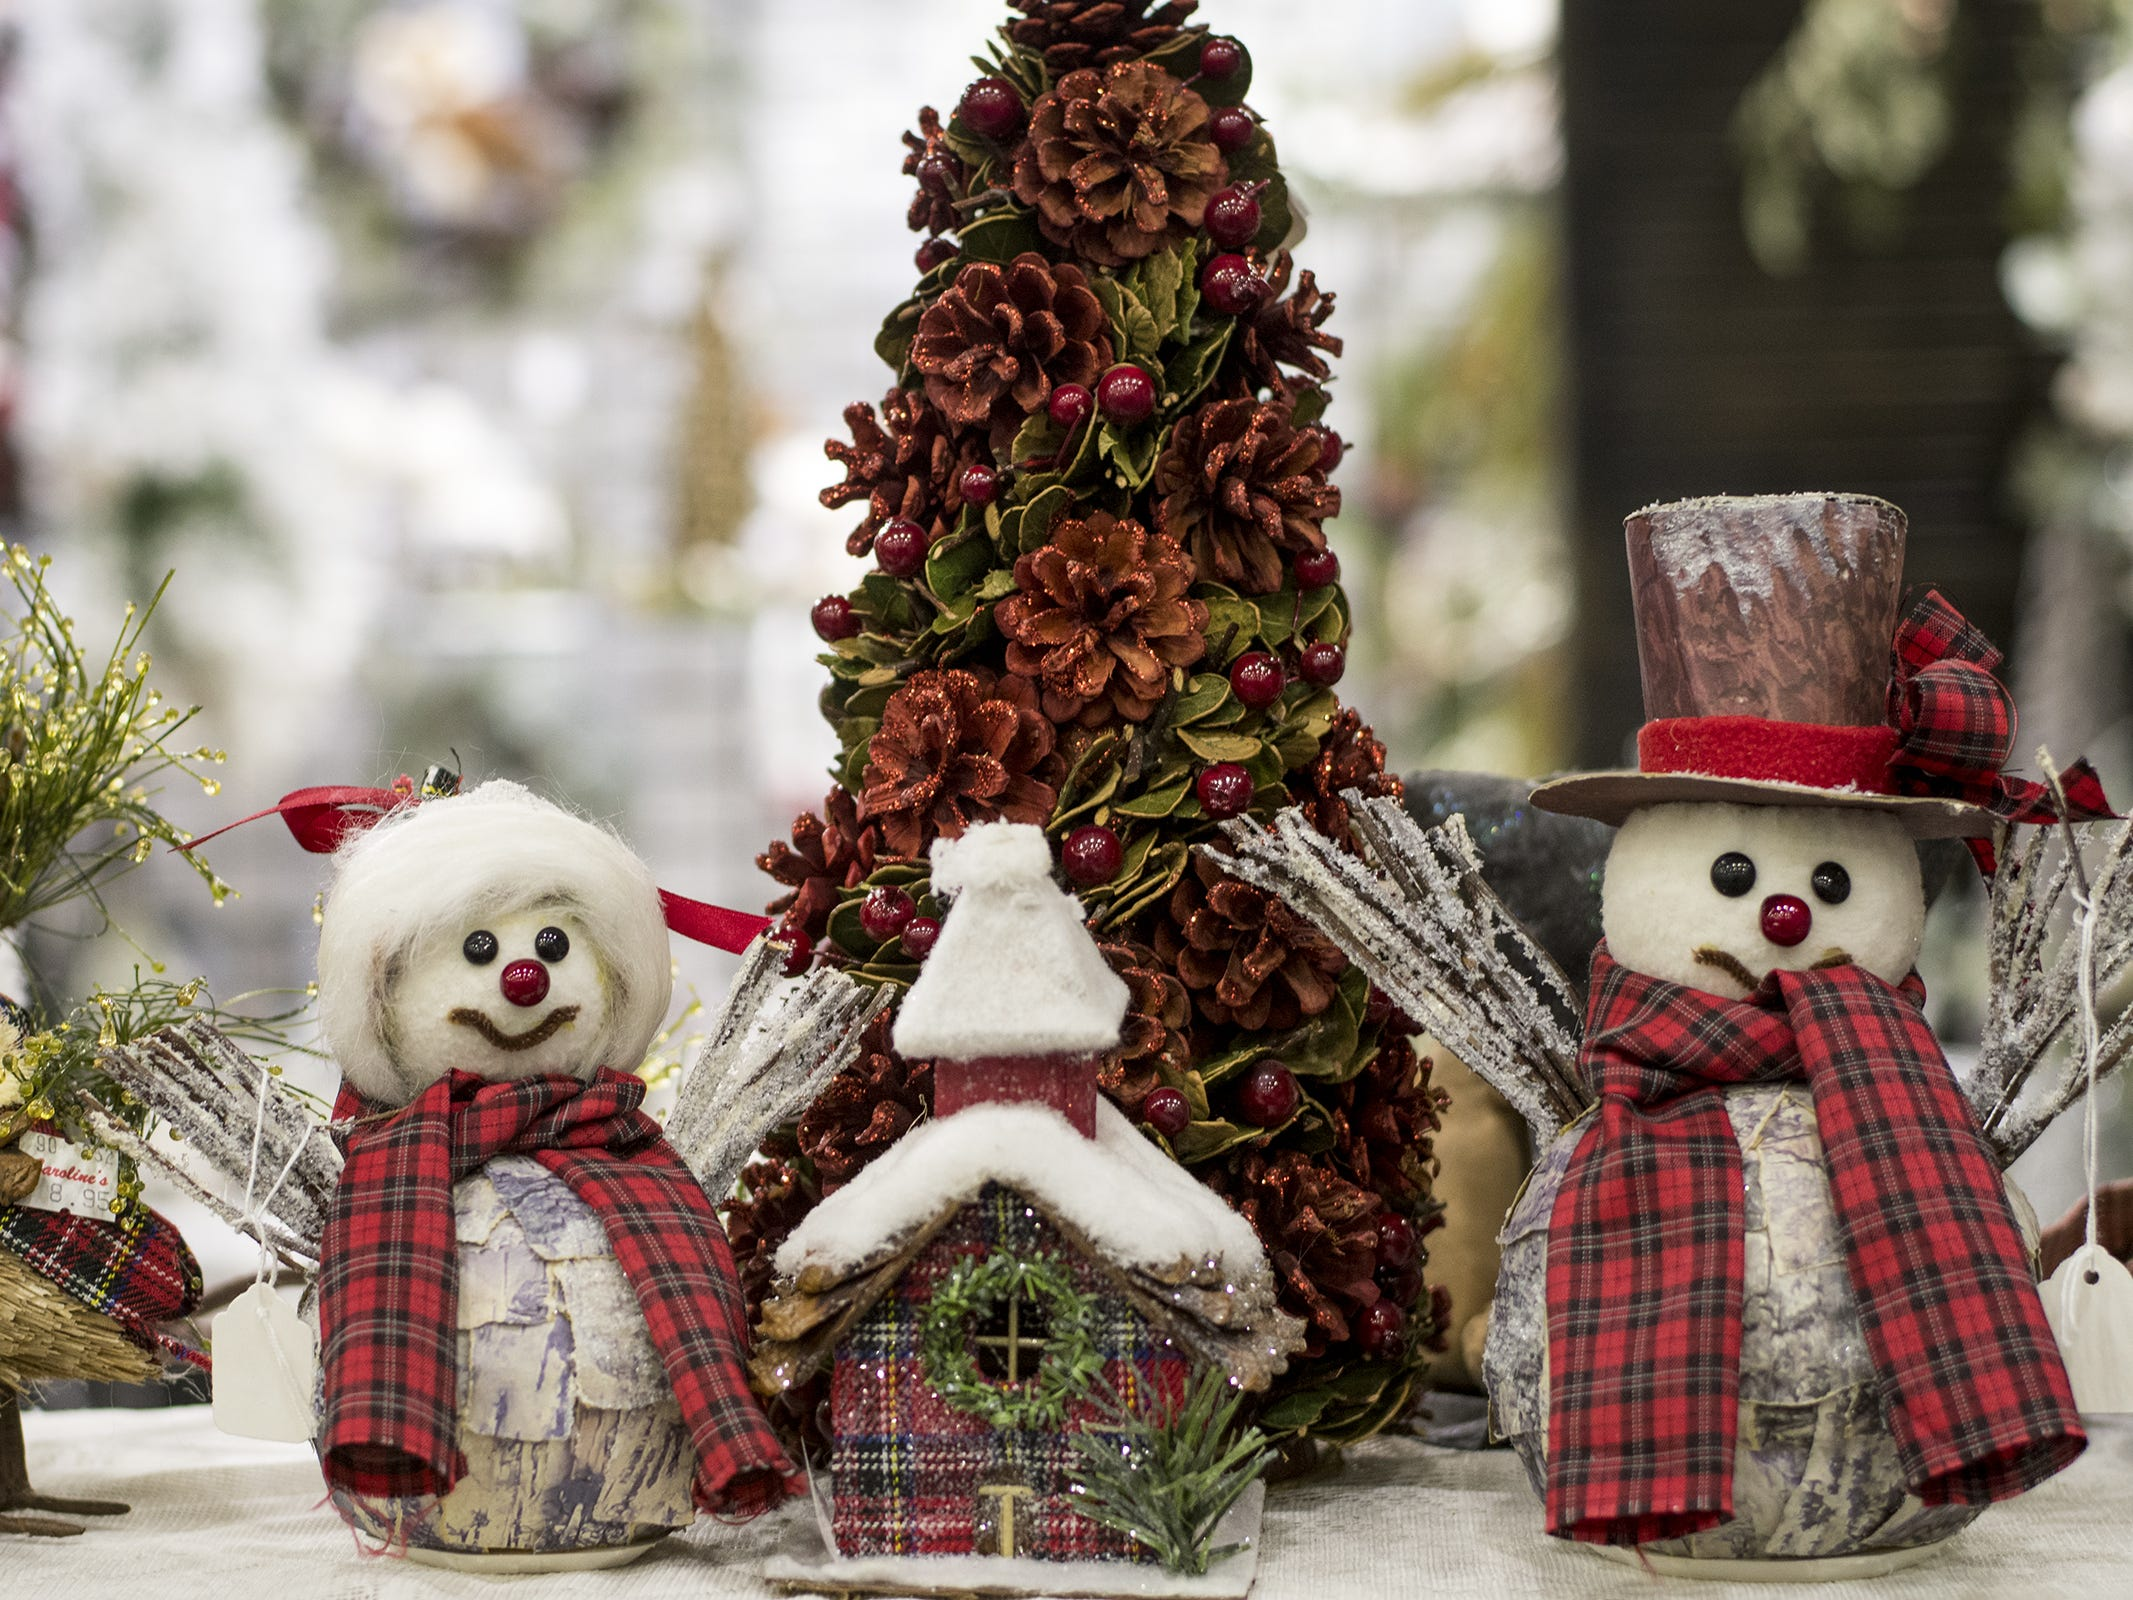 Caroline Collectibles offers holiday decorations and knick-knacks during the Greater Cincinnati Holiday Market at the Duke Energy Center Friday, November 2, 2018 in Cincinnati, Ohio. The event runs through Sunday, November 4.